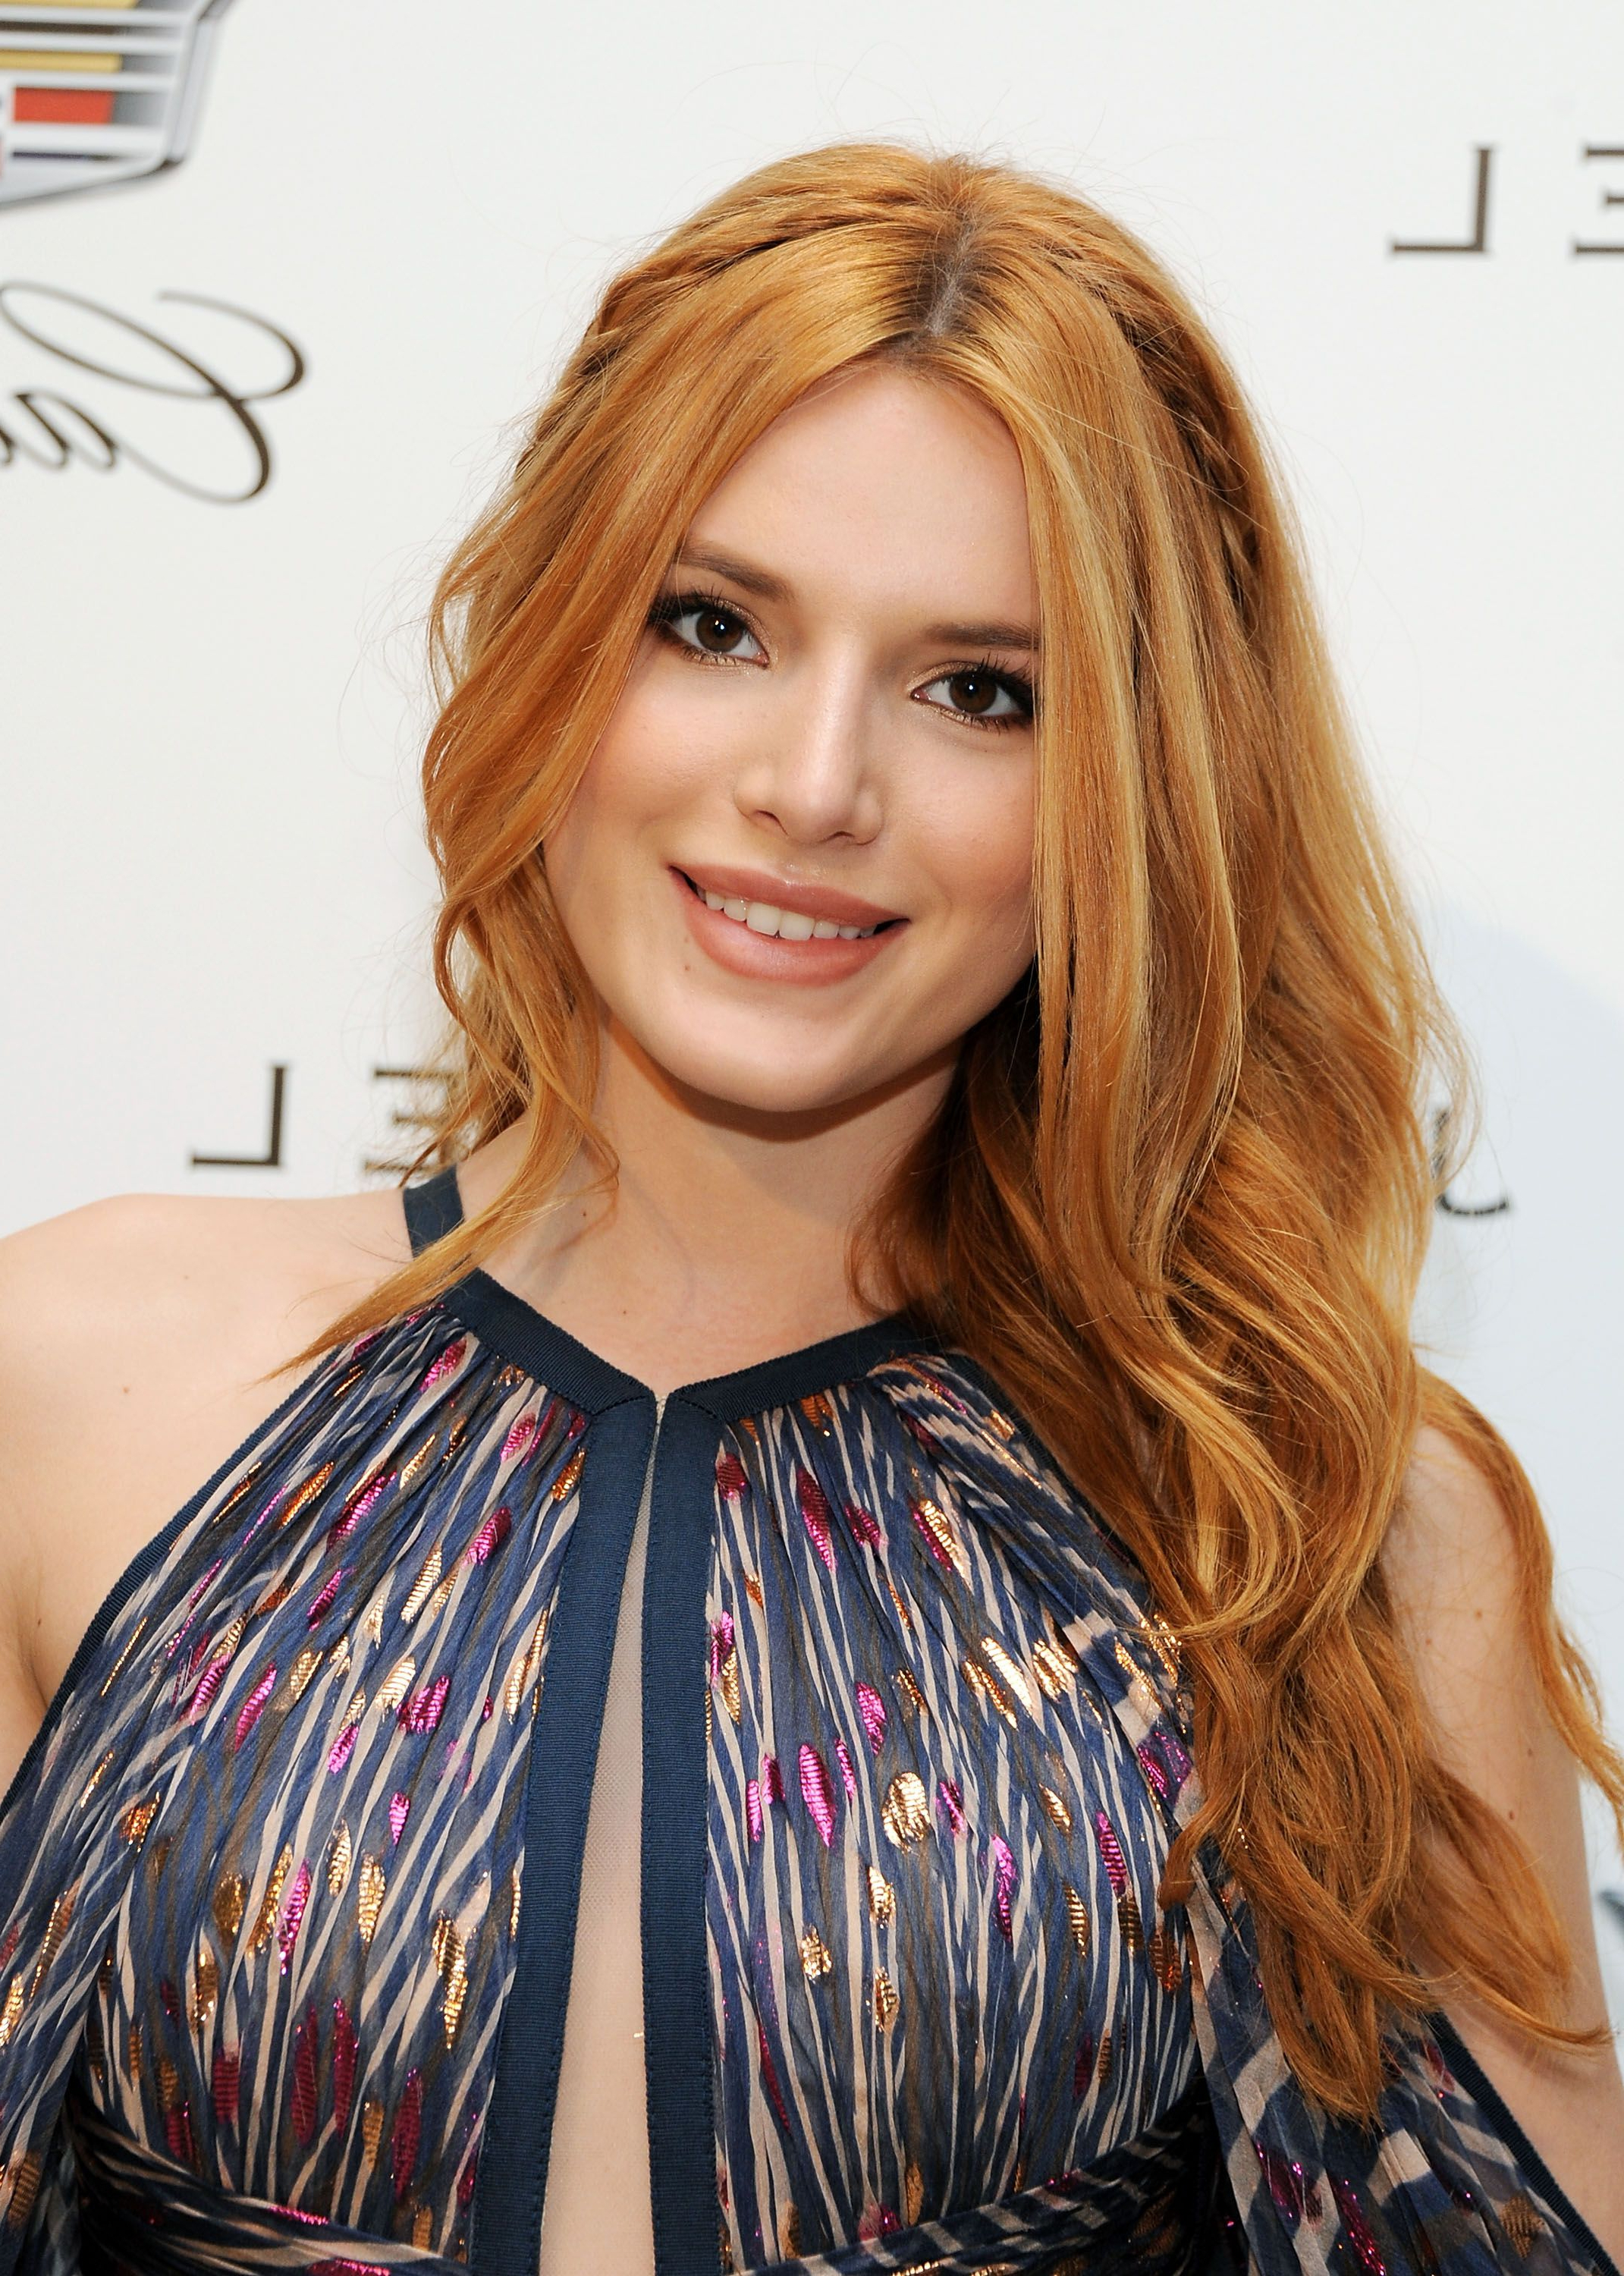 Famous Two Tier Caramel Blonde Lob Hairstyles For 26 Gorgeous Strawberry Blonde Hair Color Ideas From Celebrities For (View 12 of 20)